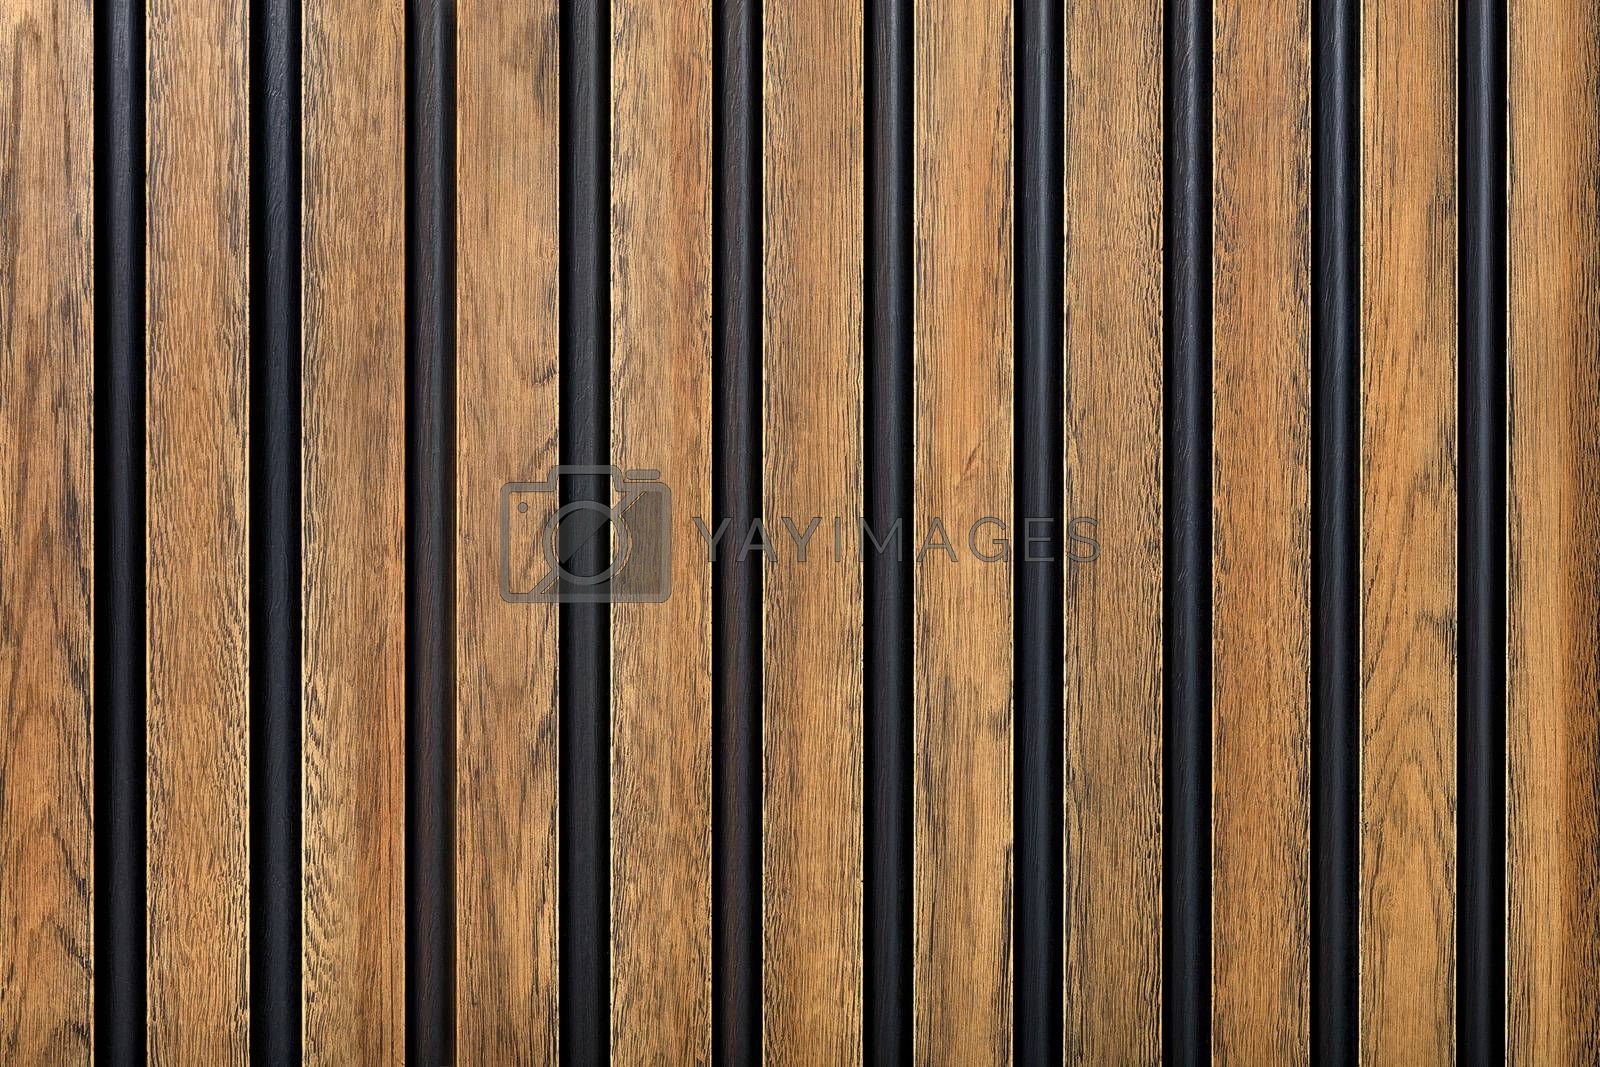 A wooden fence made of vertical decorative planks with a pronounced texture of light brown color with black spaces.